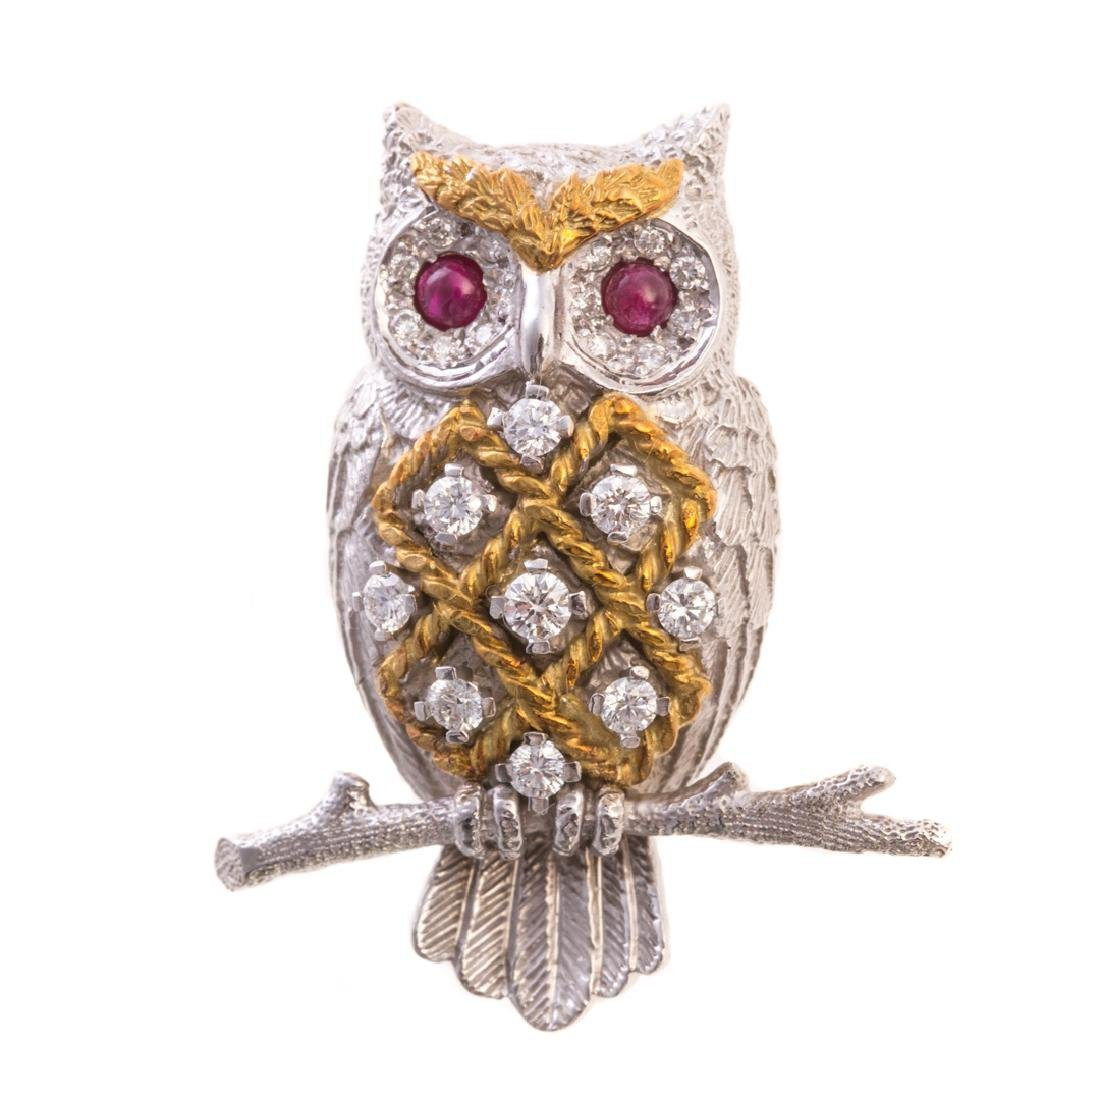 An Owl Brooch by Scully & Scully in 18K